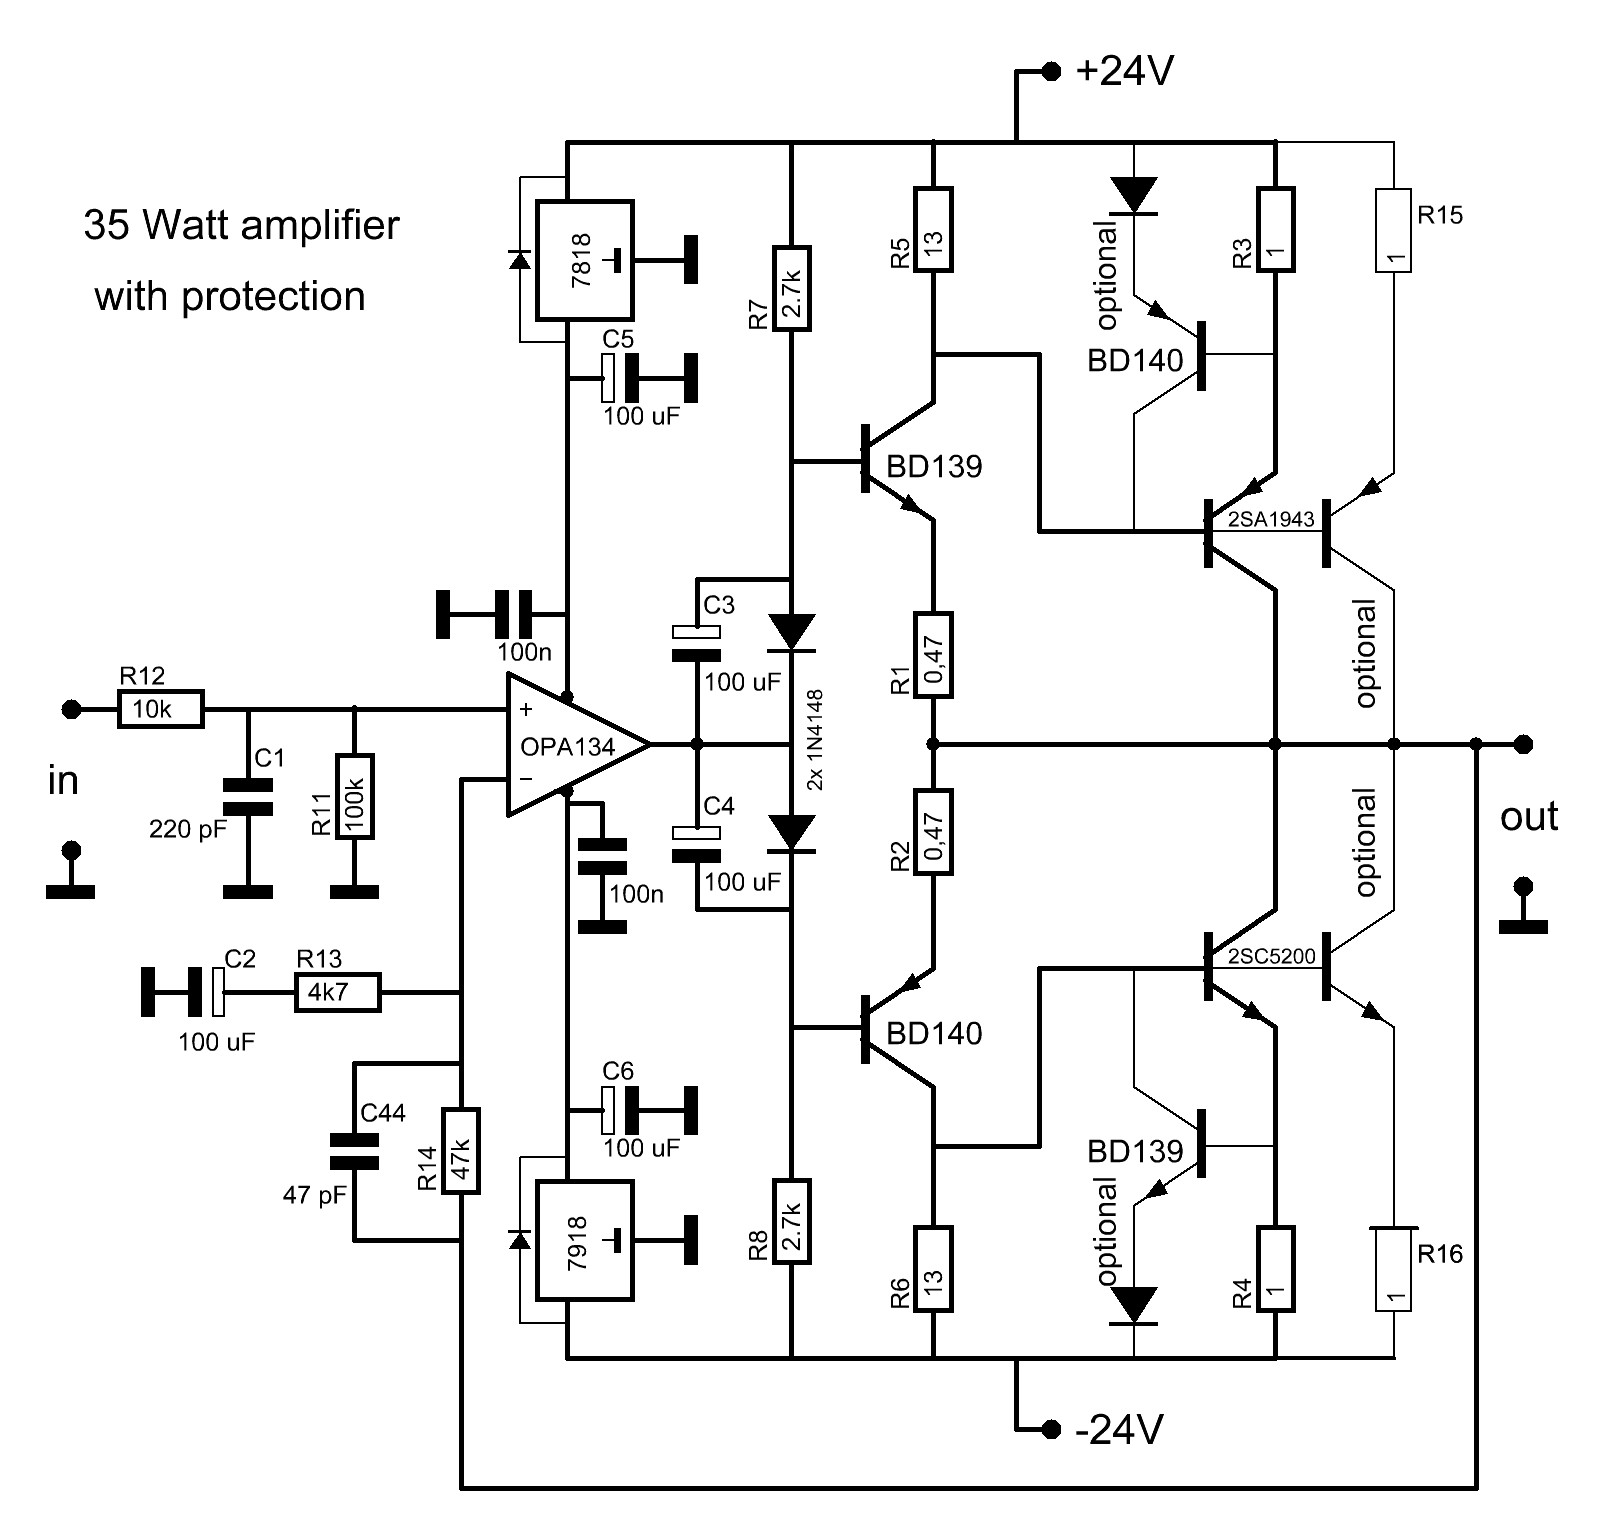 Basic Audio Amplifier Another 35 Watt Solid State The Main Diagram